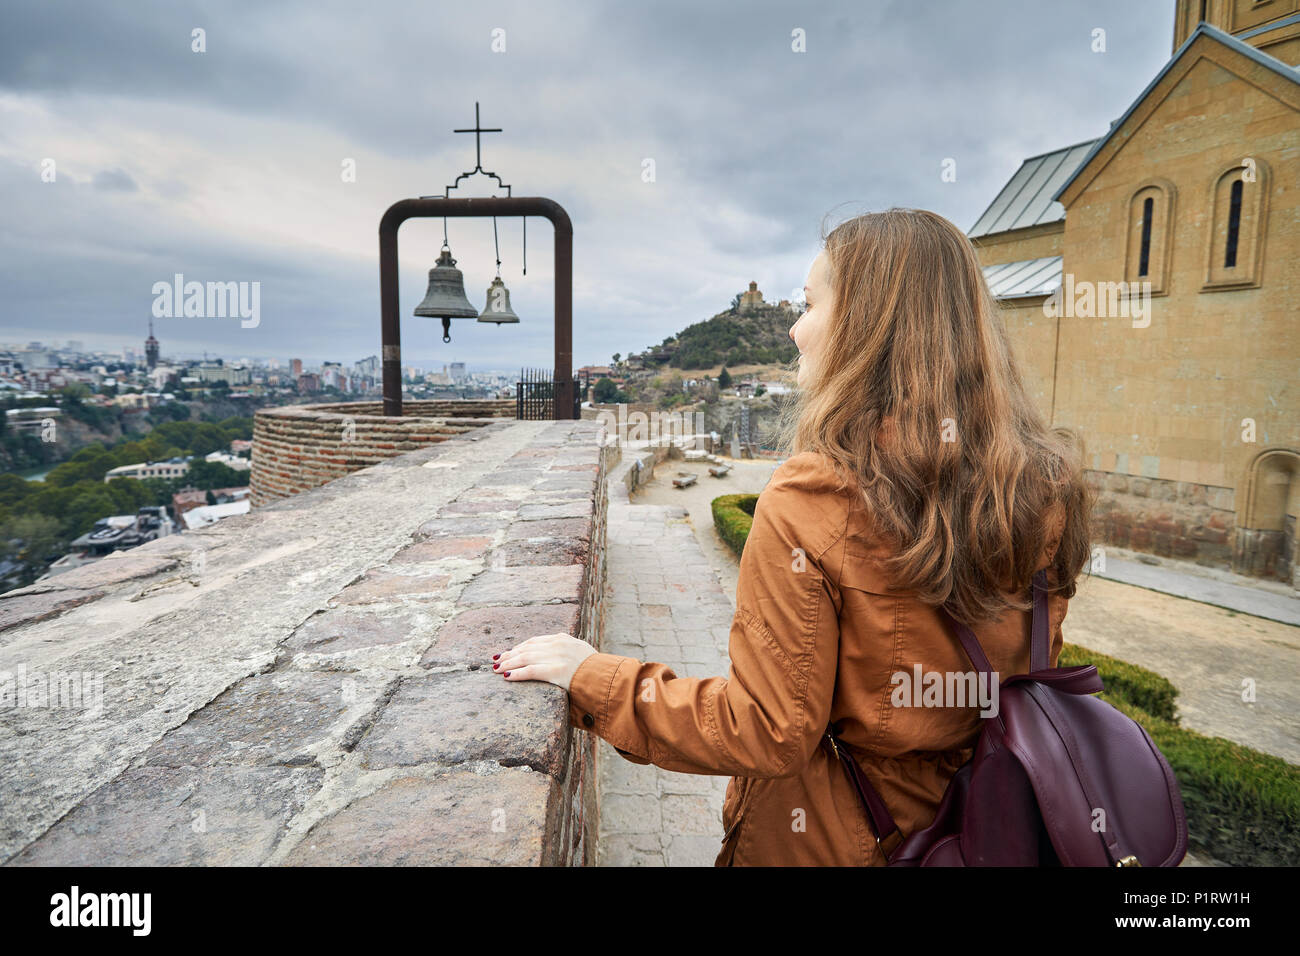 Tourist woman near Bells at Cathedral in Old medieval castle Narikala at overcast cloudy sky in Tbilisi, Georgia - Stock Image